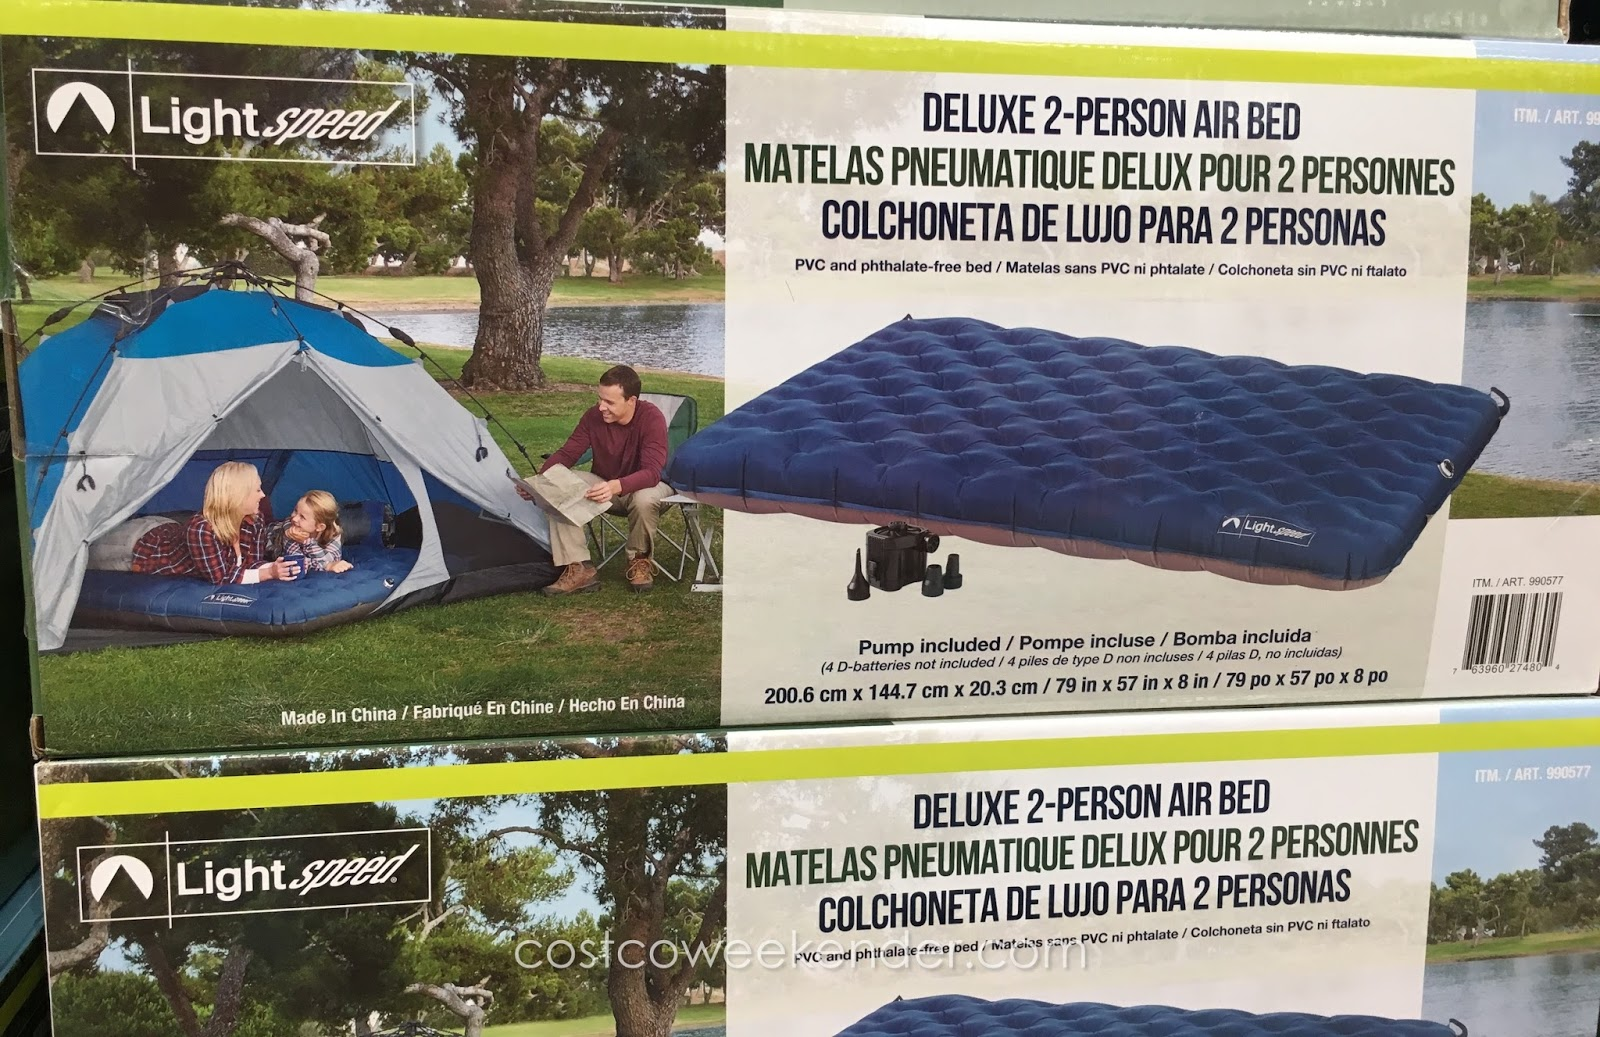 Camping bed costco - Lightspeed Deluxe 2 Person Airbed Great For Camping And Sleeping Outdoors